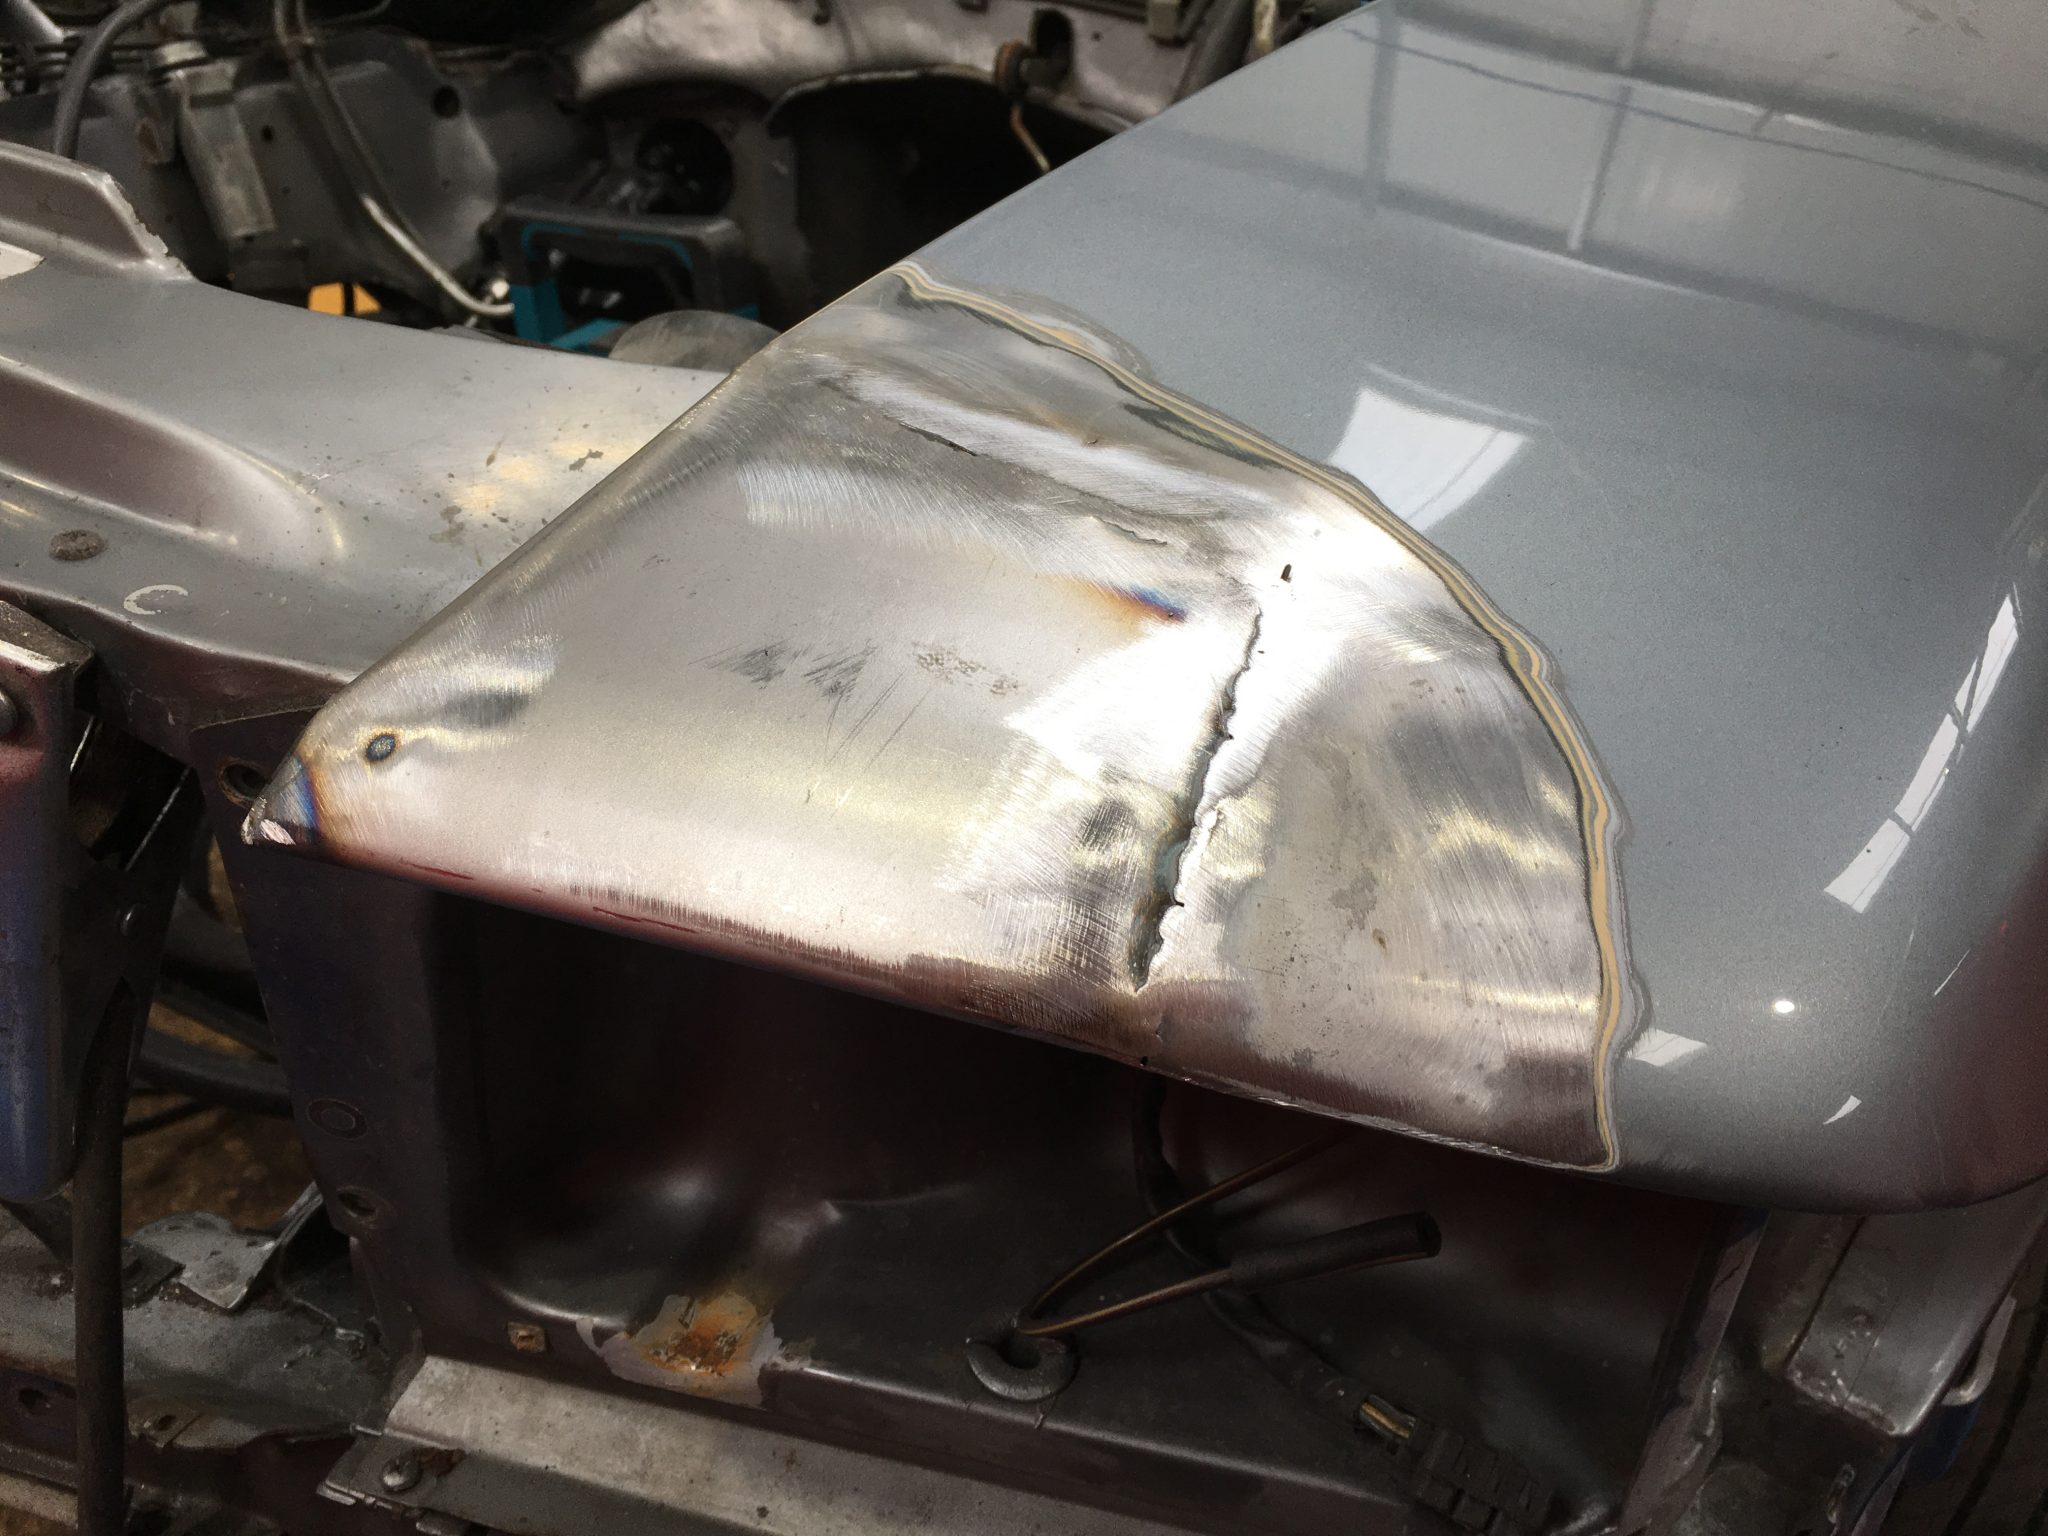 Welding complete on our 1987 Mercedes SL500